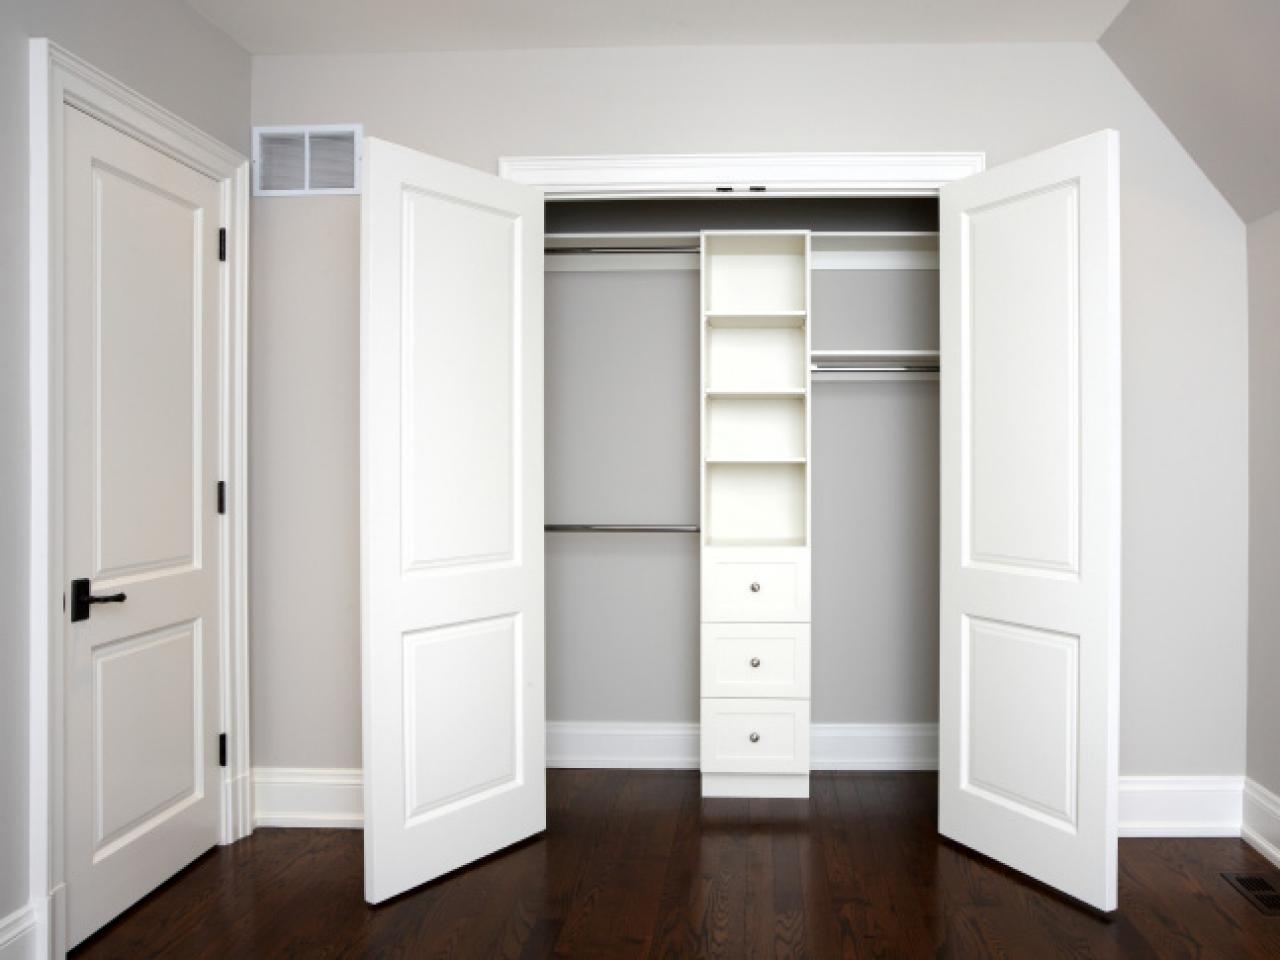 White Closet Doors Combined with Light Grey Painting Constructing an Appealing Interior